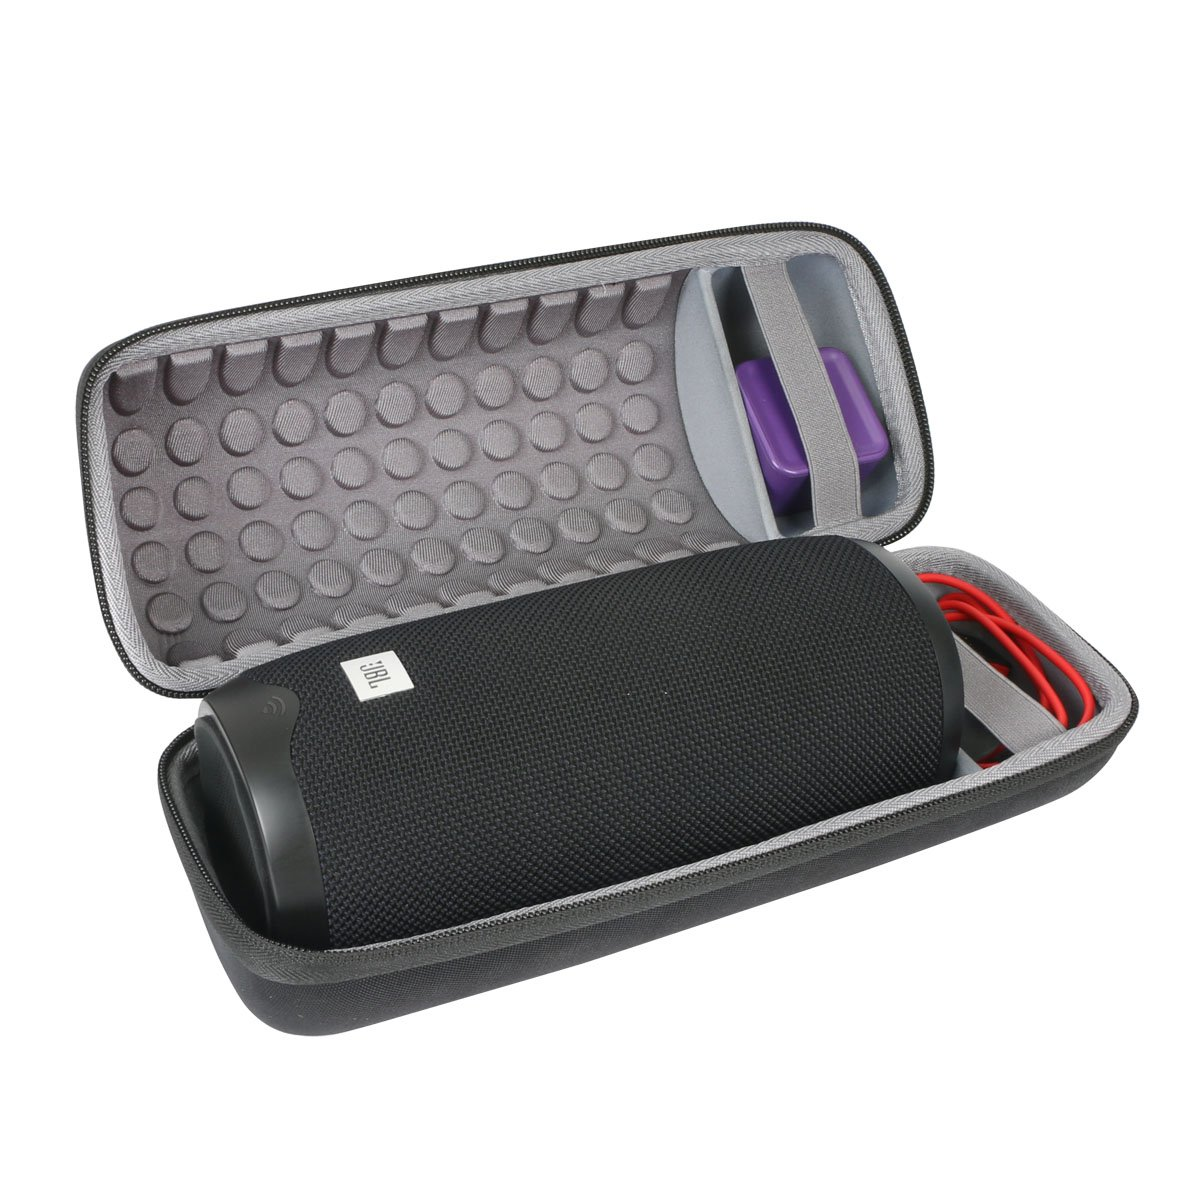 Amazon.com: Hard Travel Case for JBL Link 20 Voice-Activated Portable Bluetooth Speaker by co2CREA: Computers & Accessories